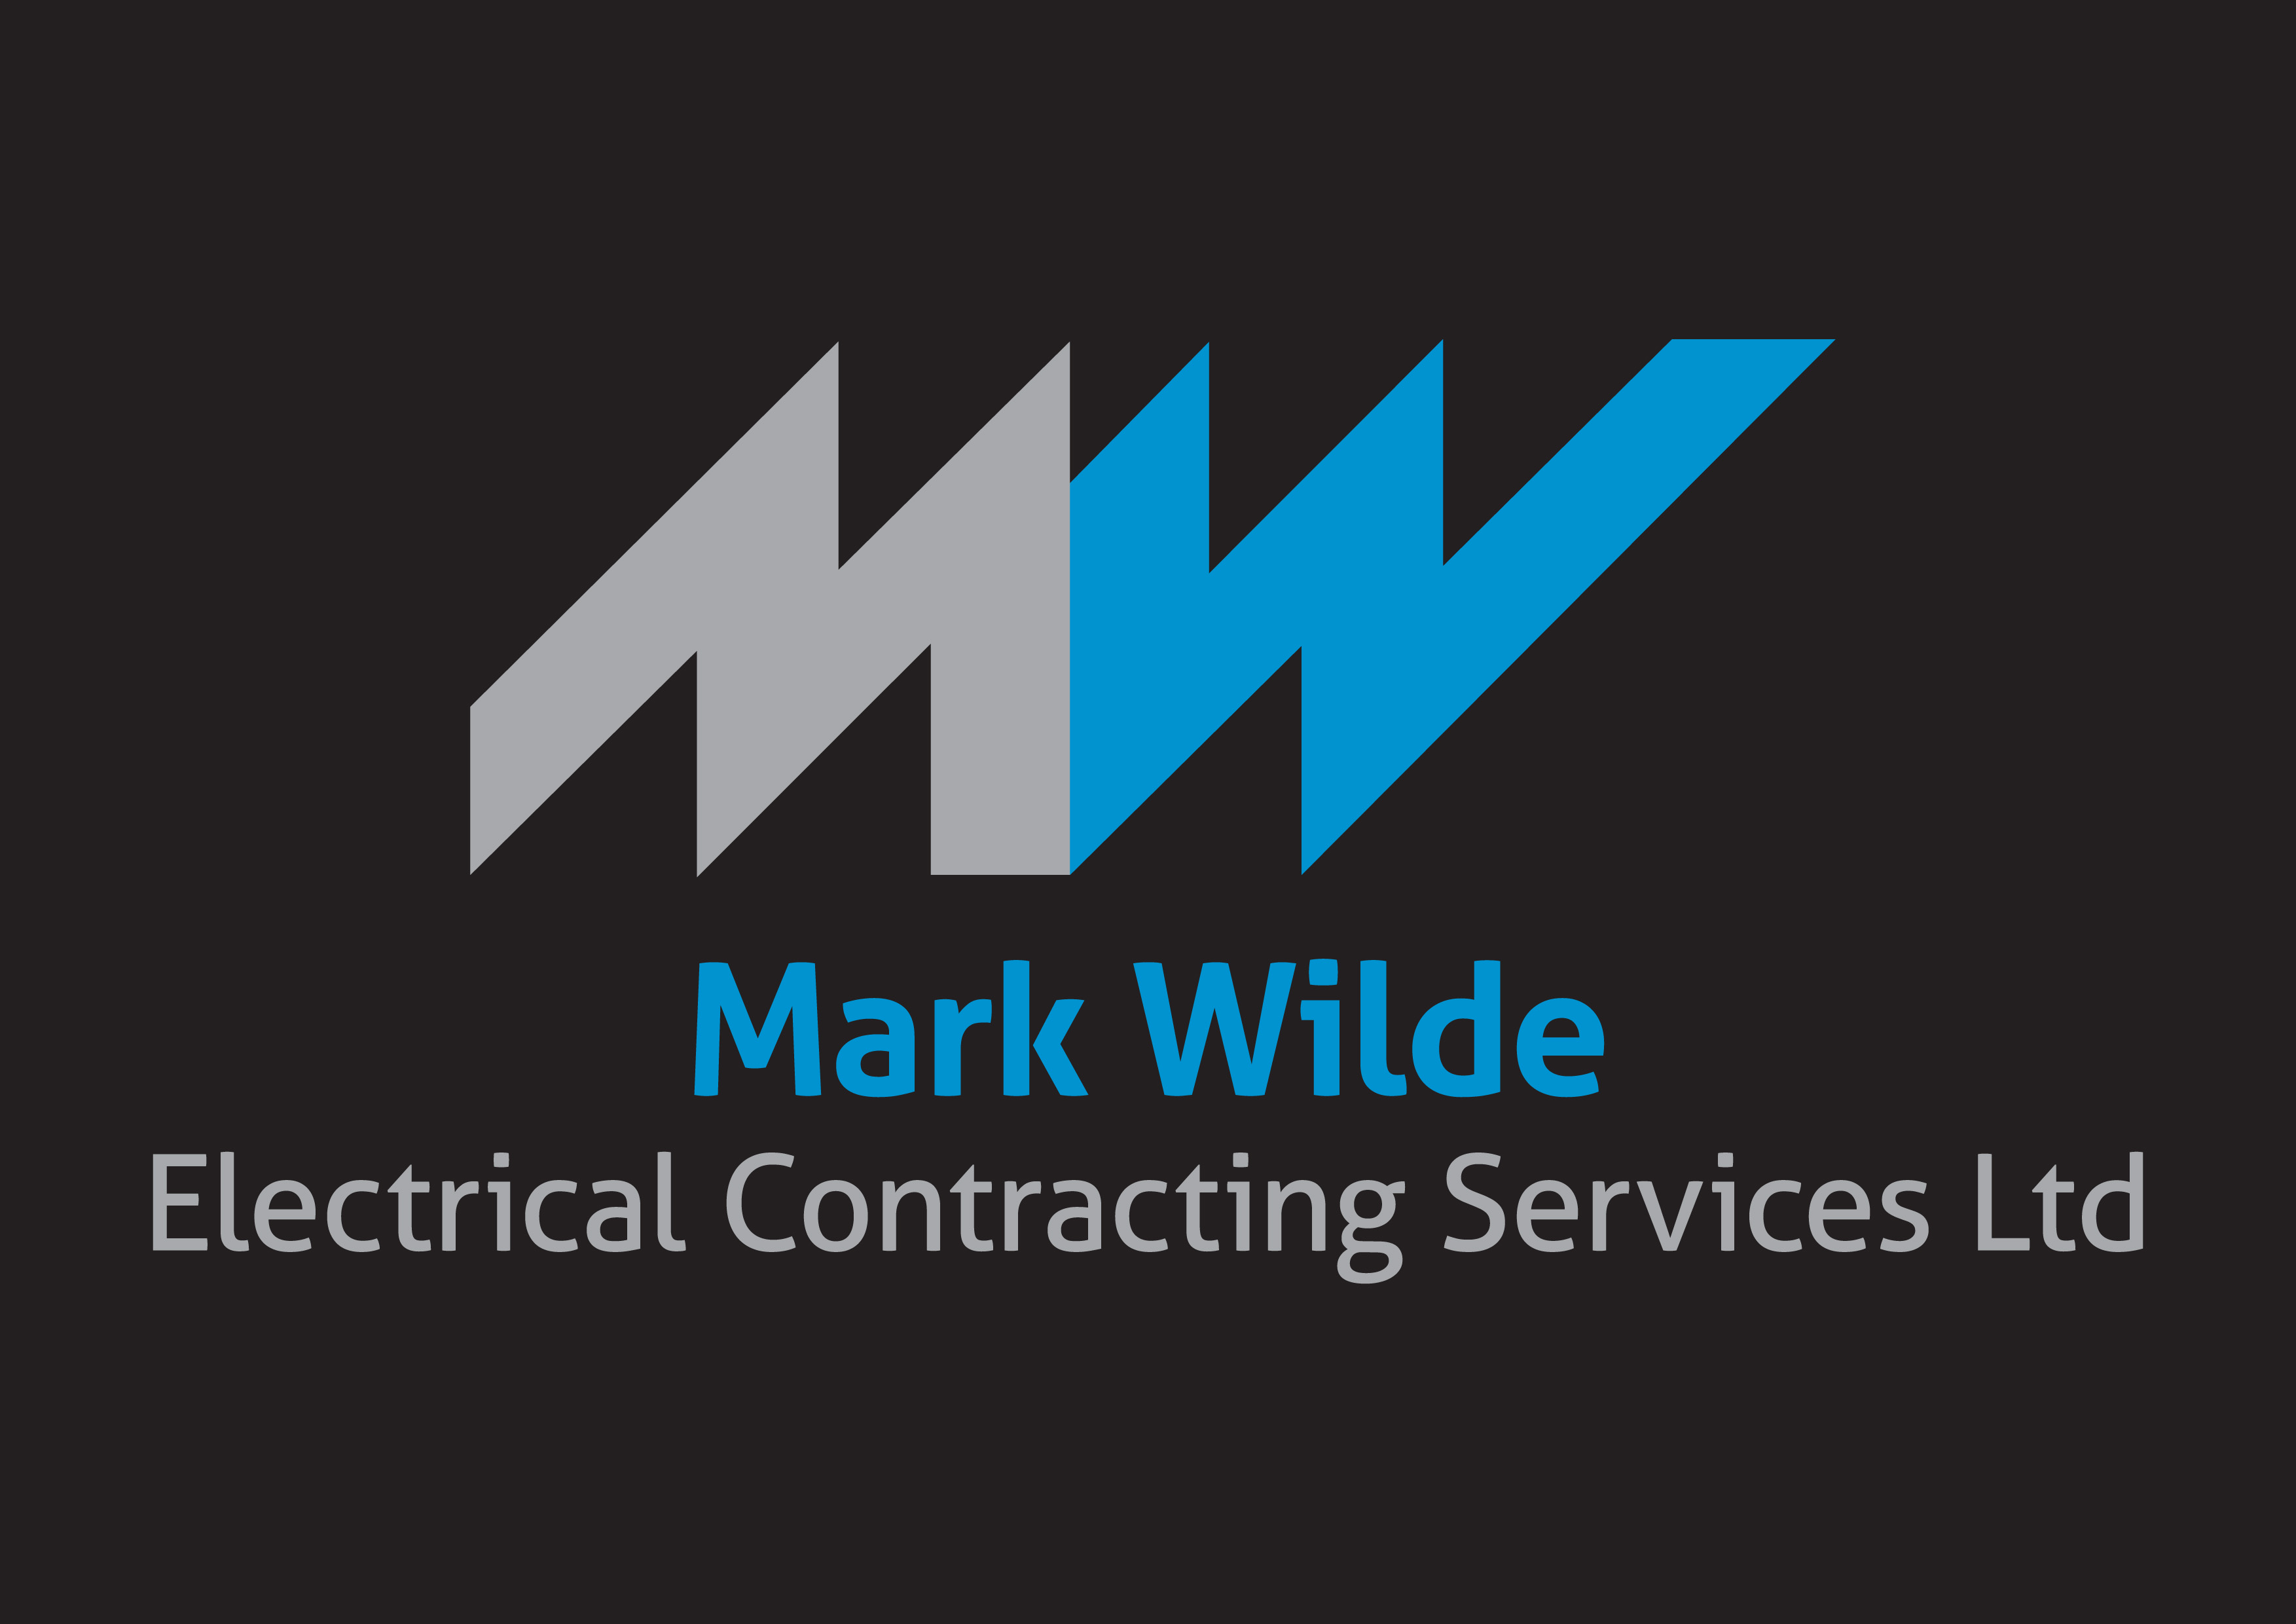 Mark Wilde Electrical Contracting